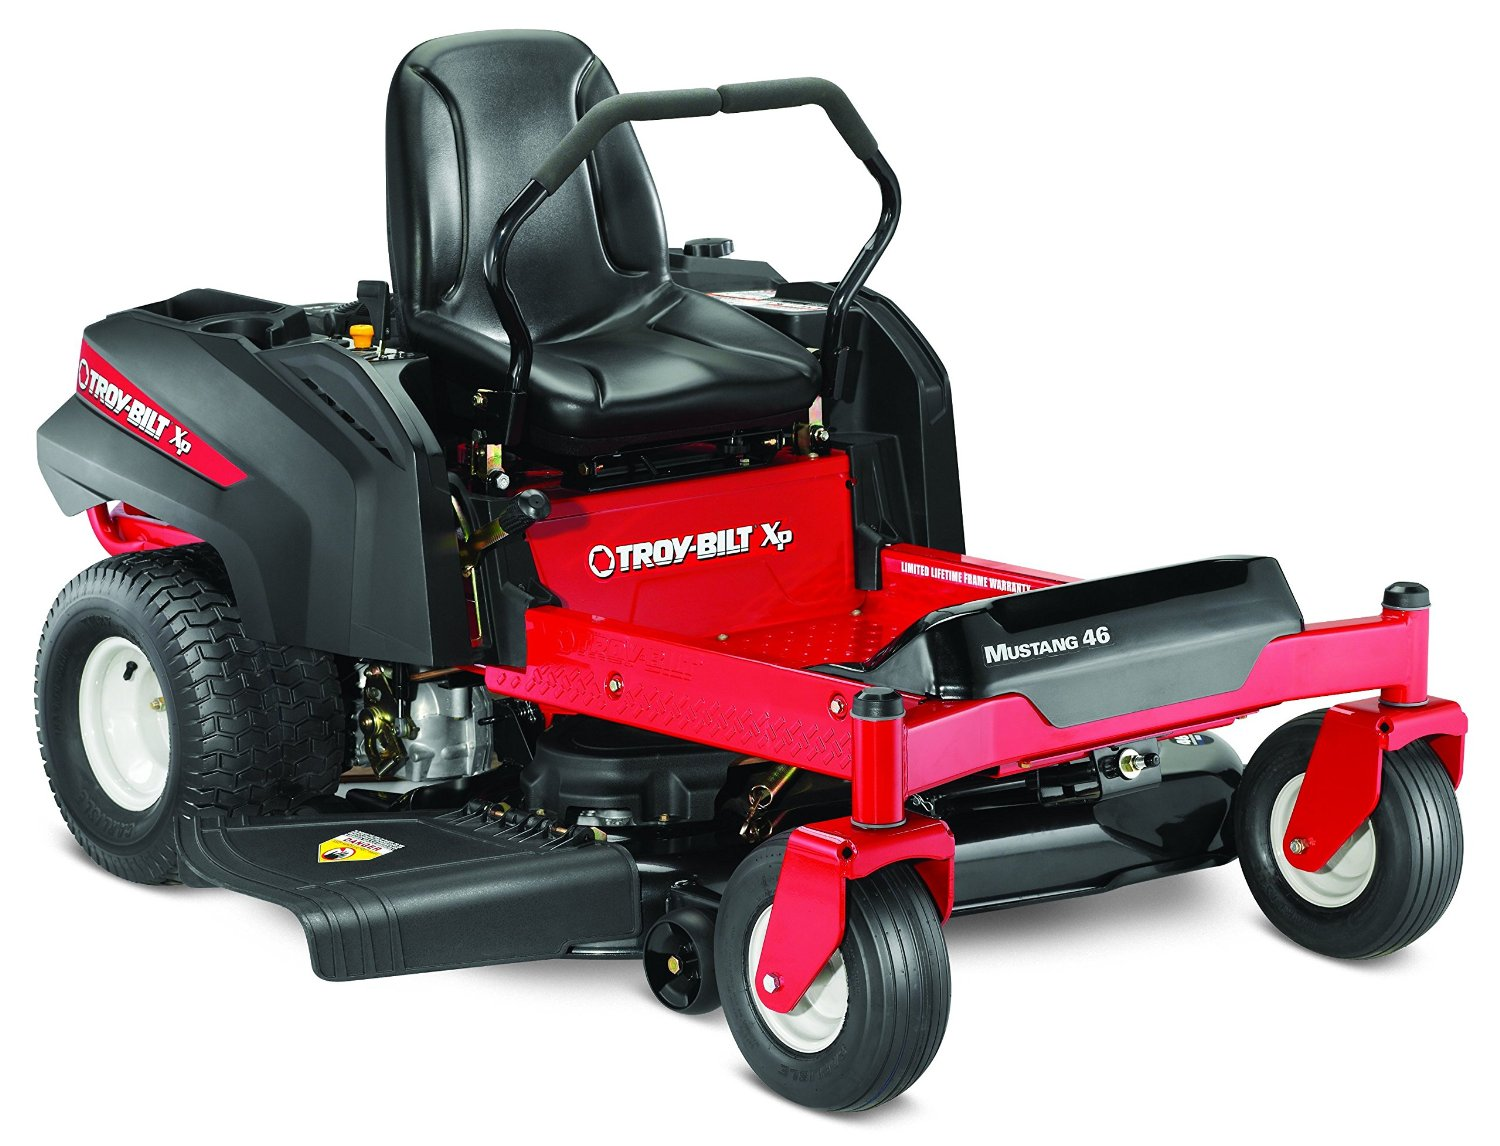 Troy-Bilt Mustang 46 24HP 46-Inch Zero-Turn Mower